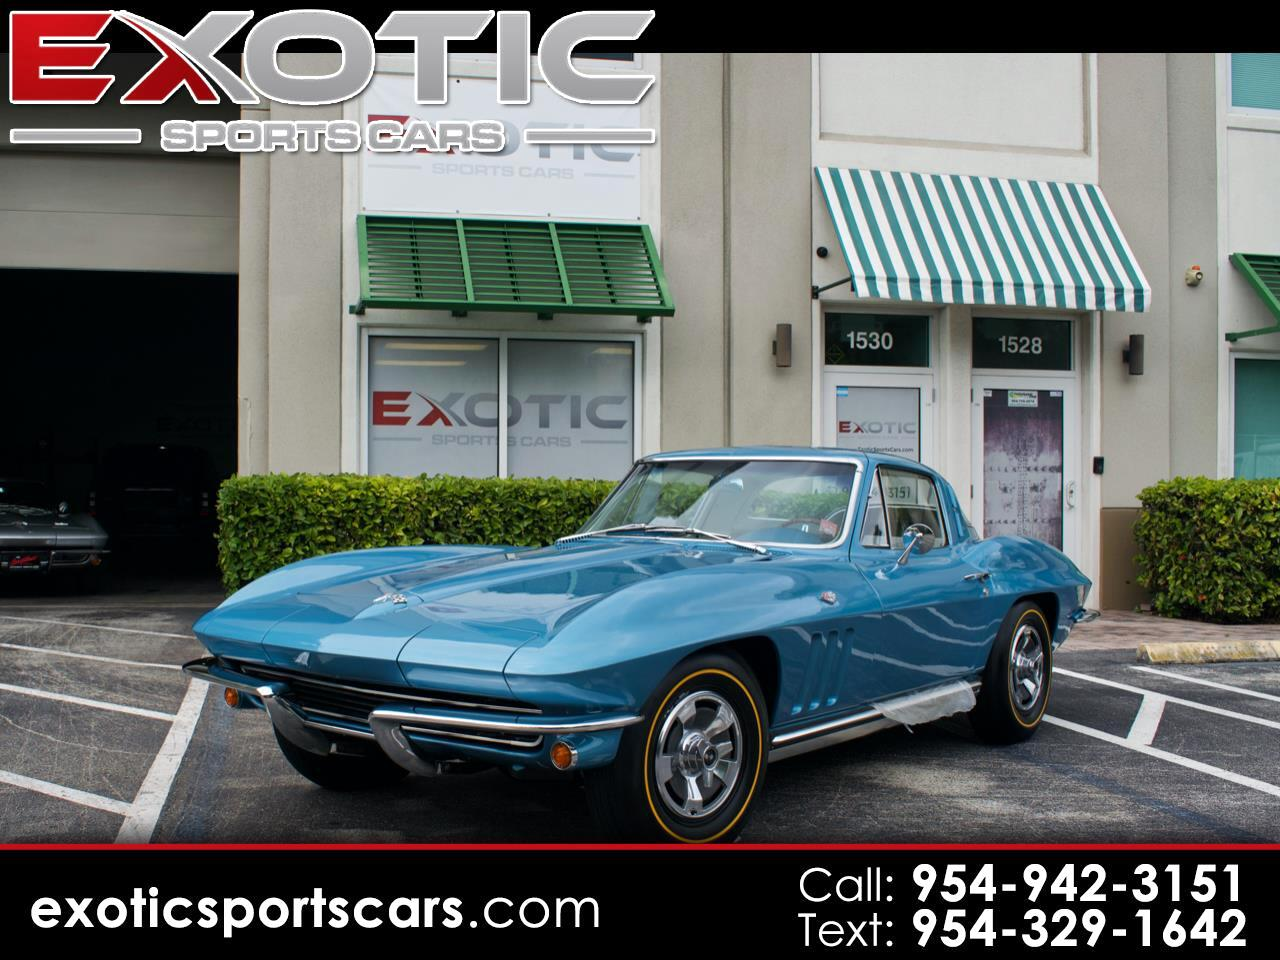 Chevrolet Corvette Stingray 2dr Cpe w/3LT 1965